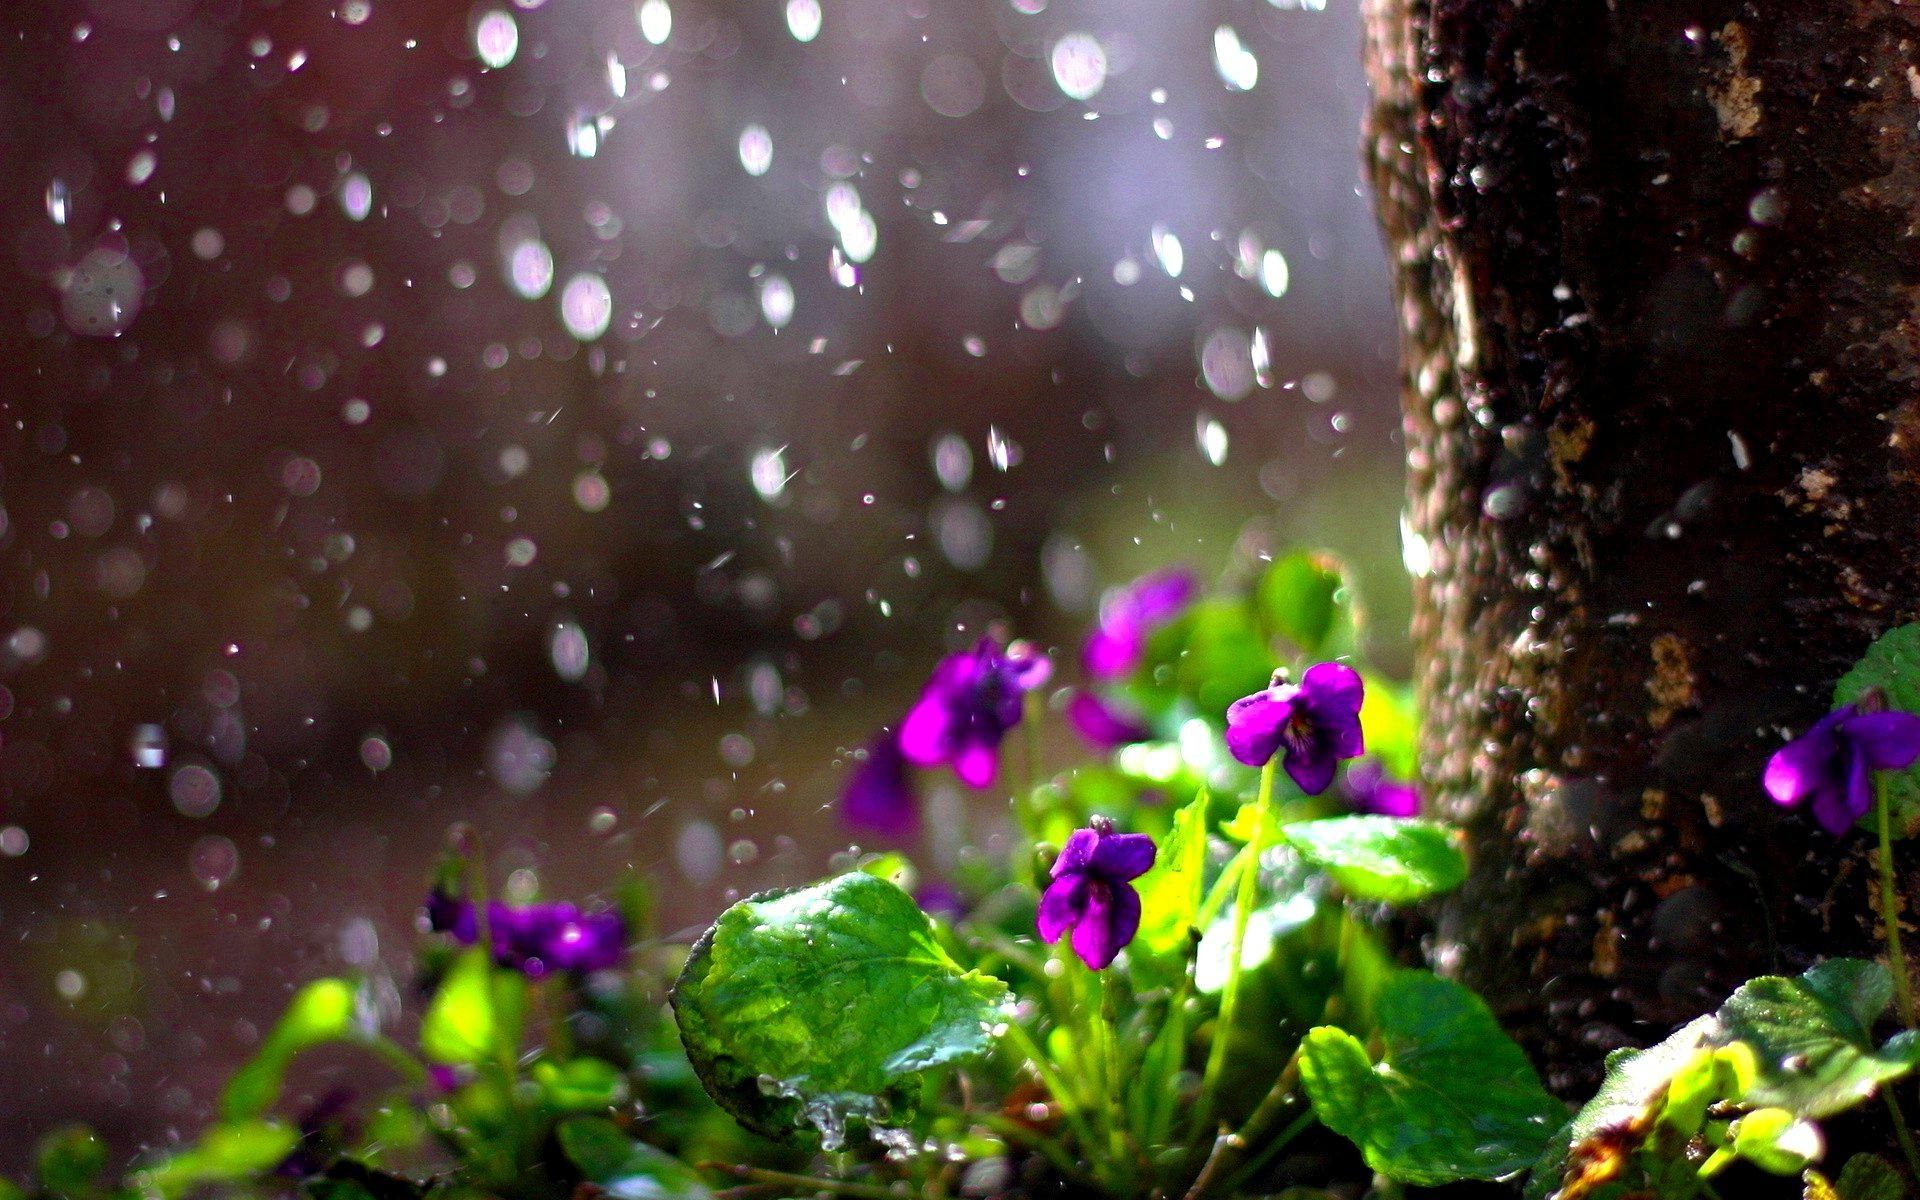 Spring Rain Wallpapers Background For Hd Wallpaper Desktop 1920x1200 Px 399 99 Kb Spring Flowers Background Rain Wallpapers Bokeh Wallpaper